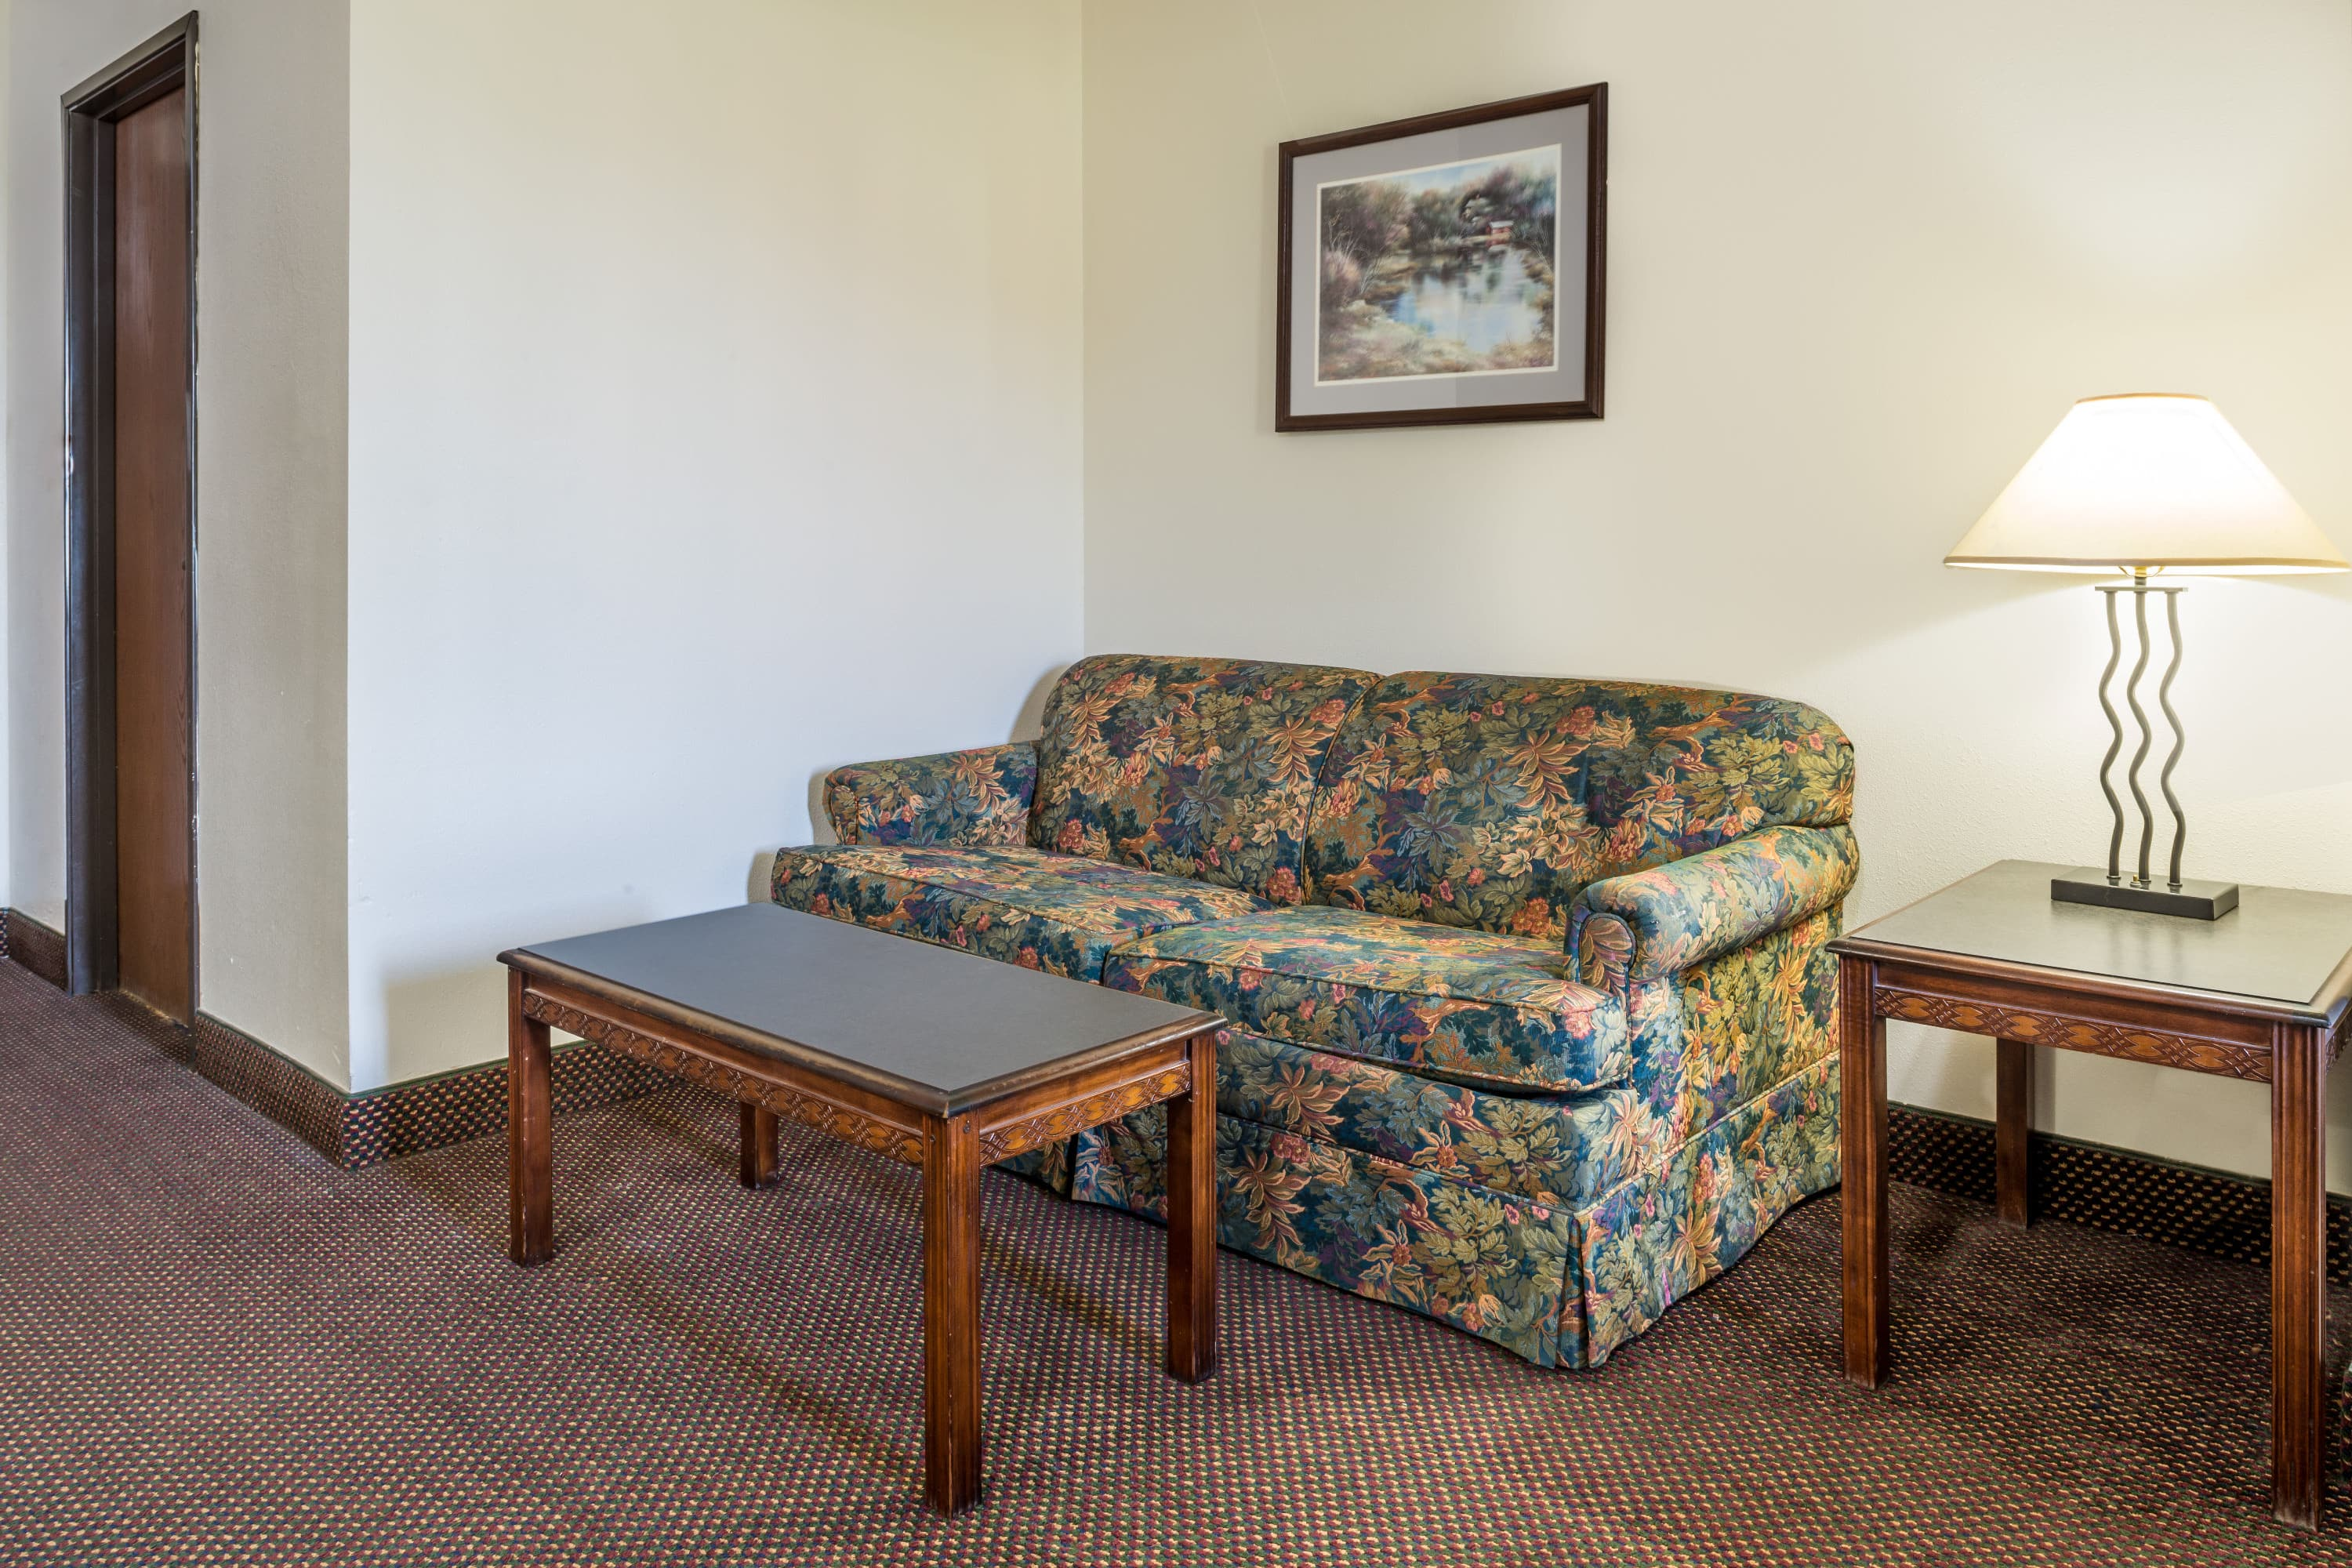 Days Inn Pontoon Beach suite in Pontoon Beach, Illinois